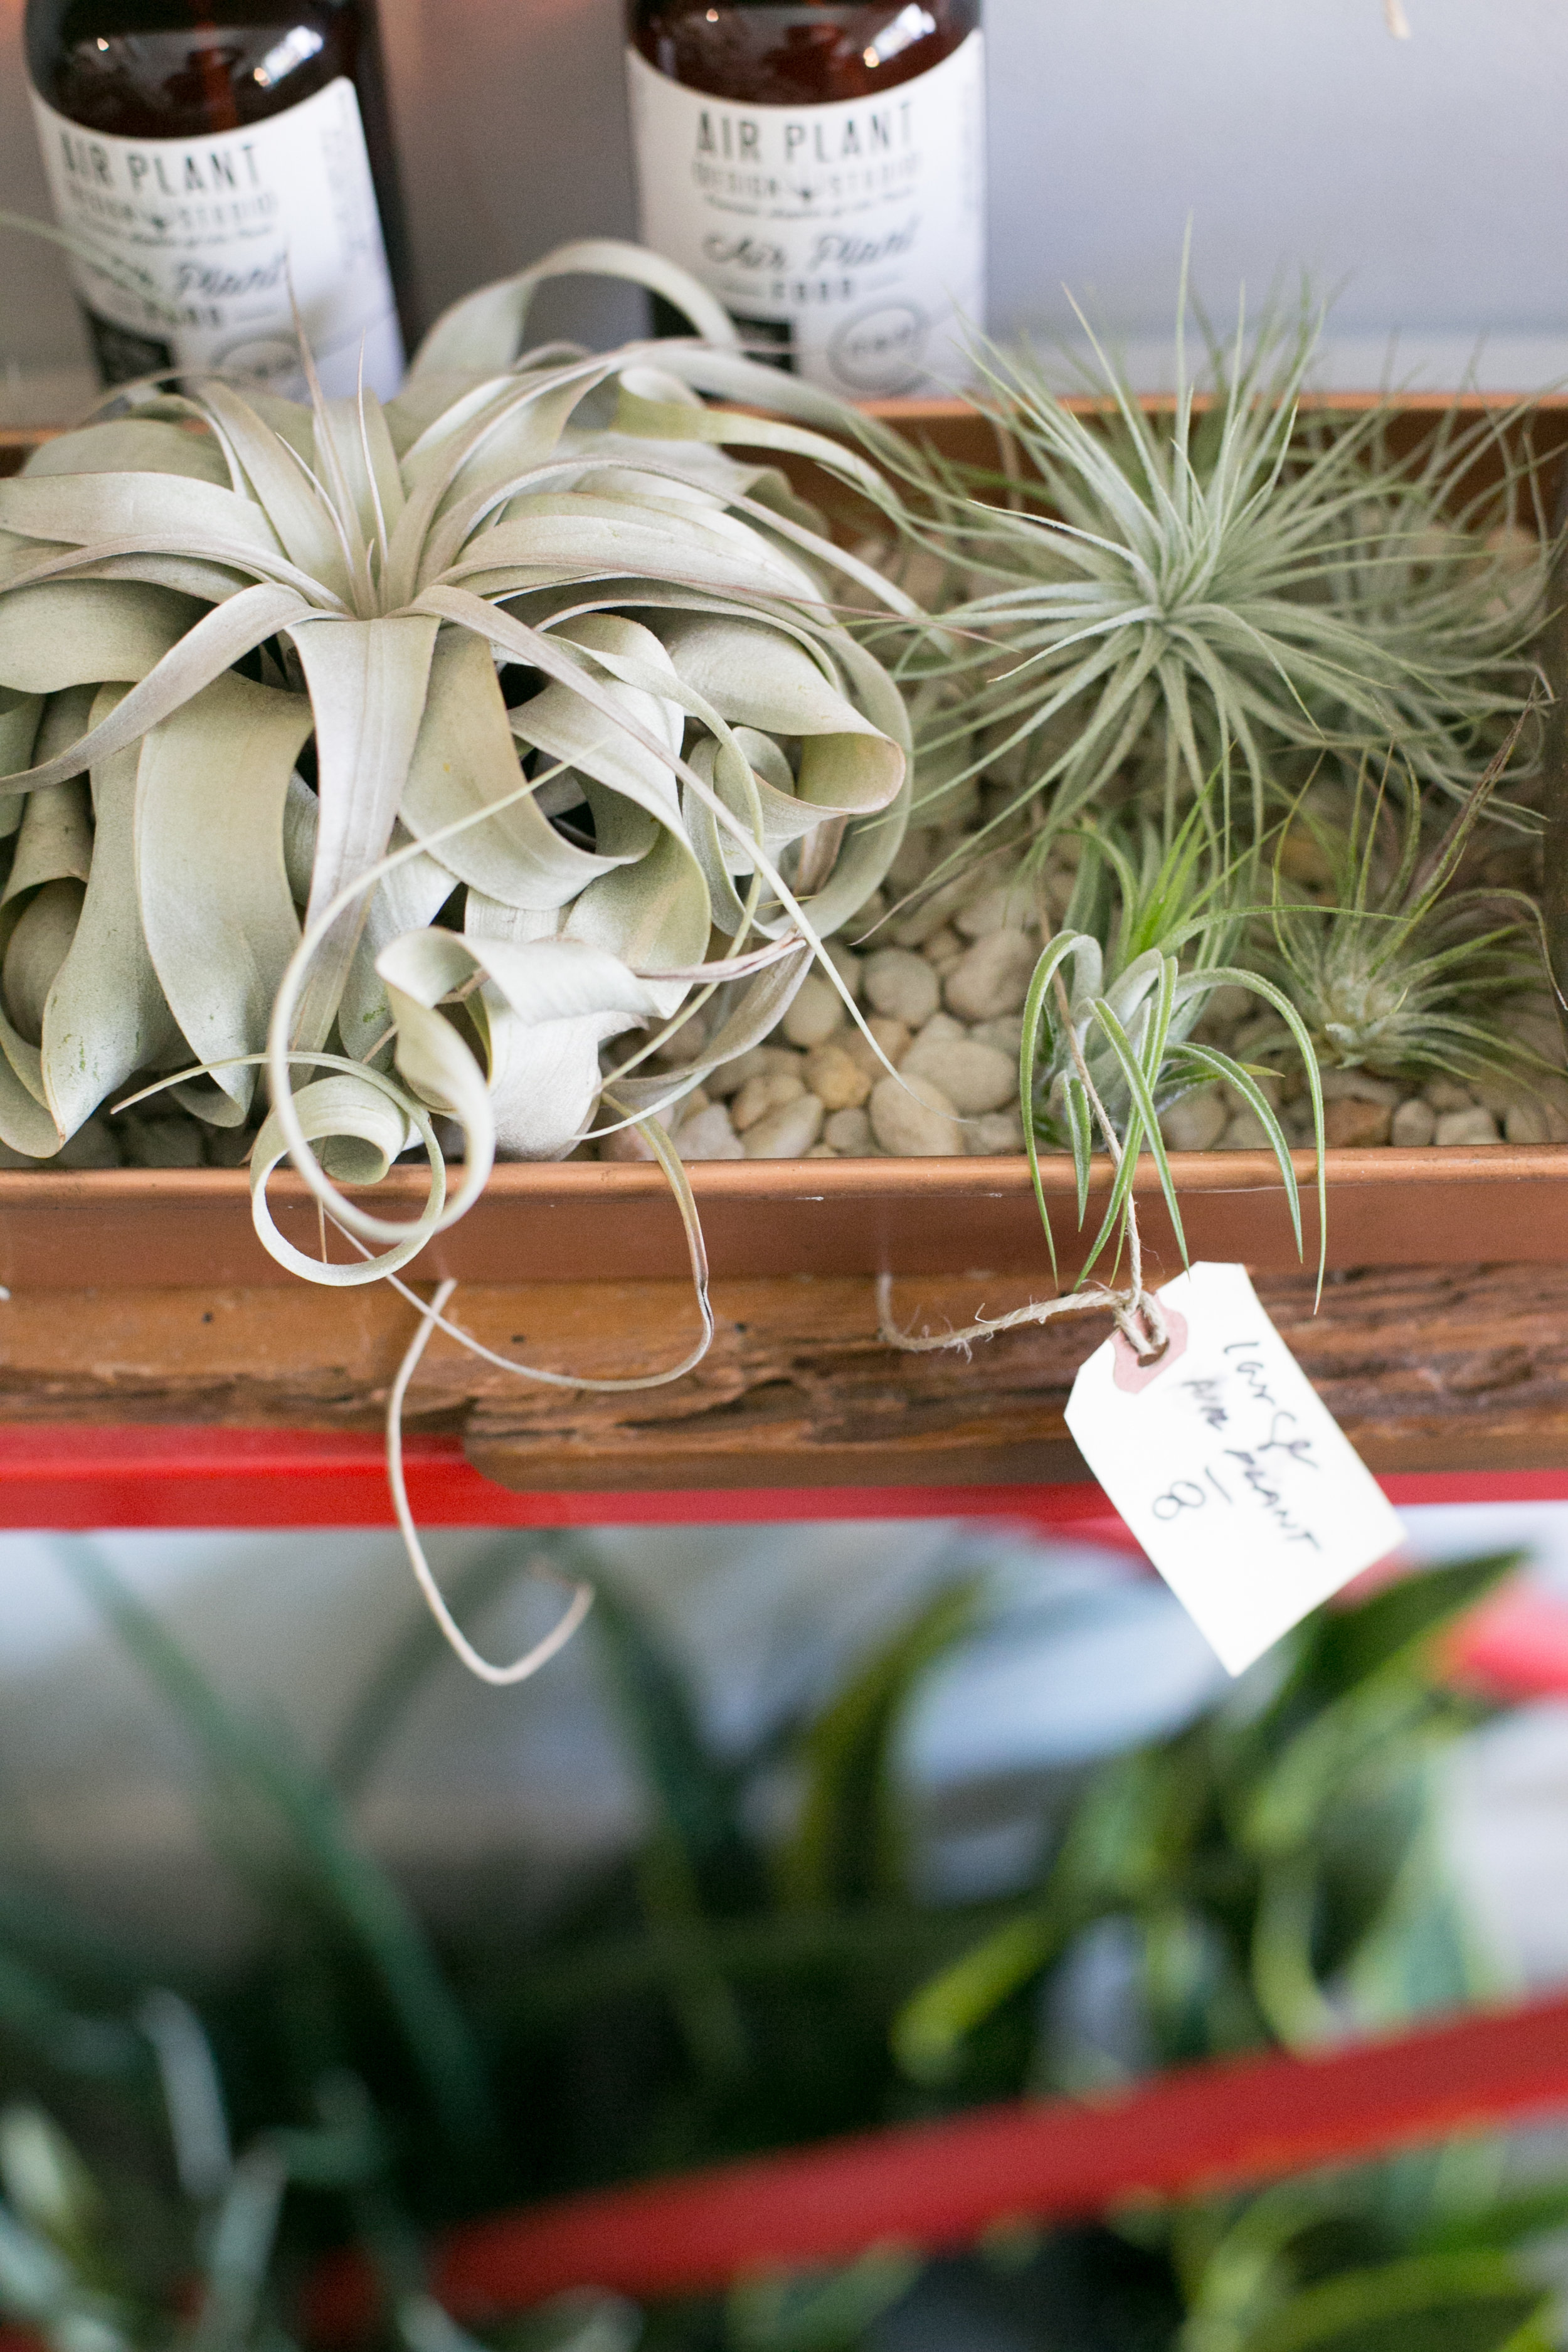 We carry several species of air plants, in various shapes and sizes.